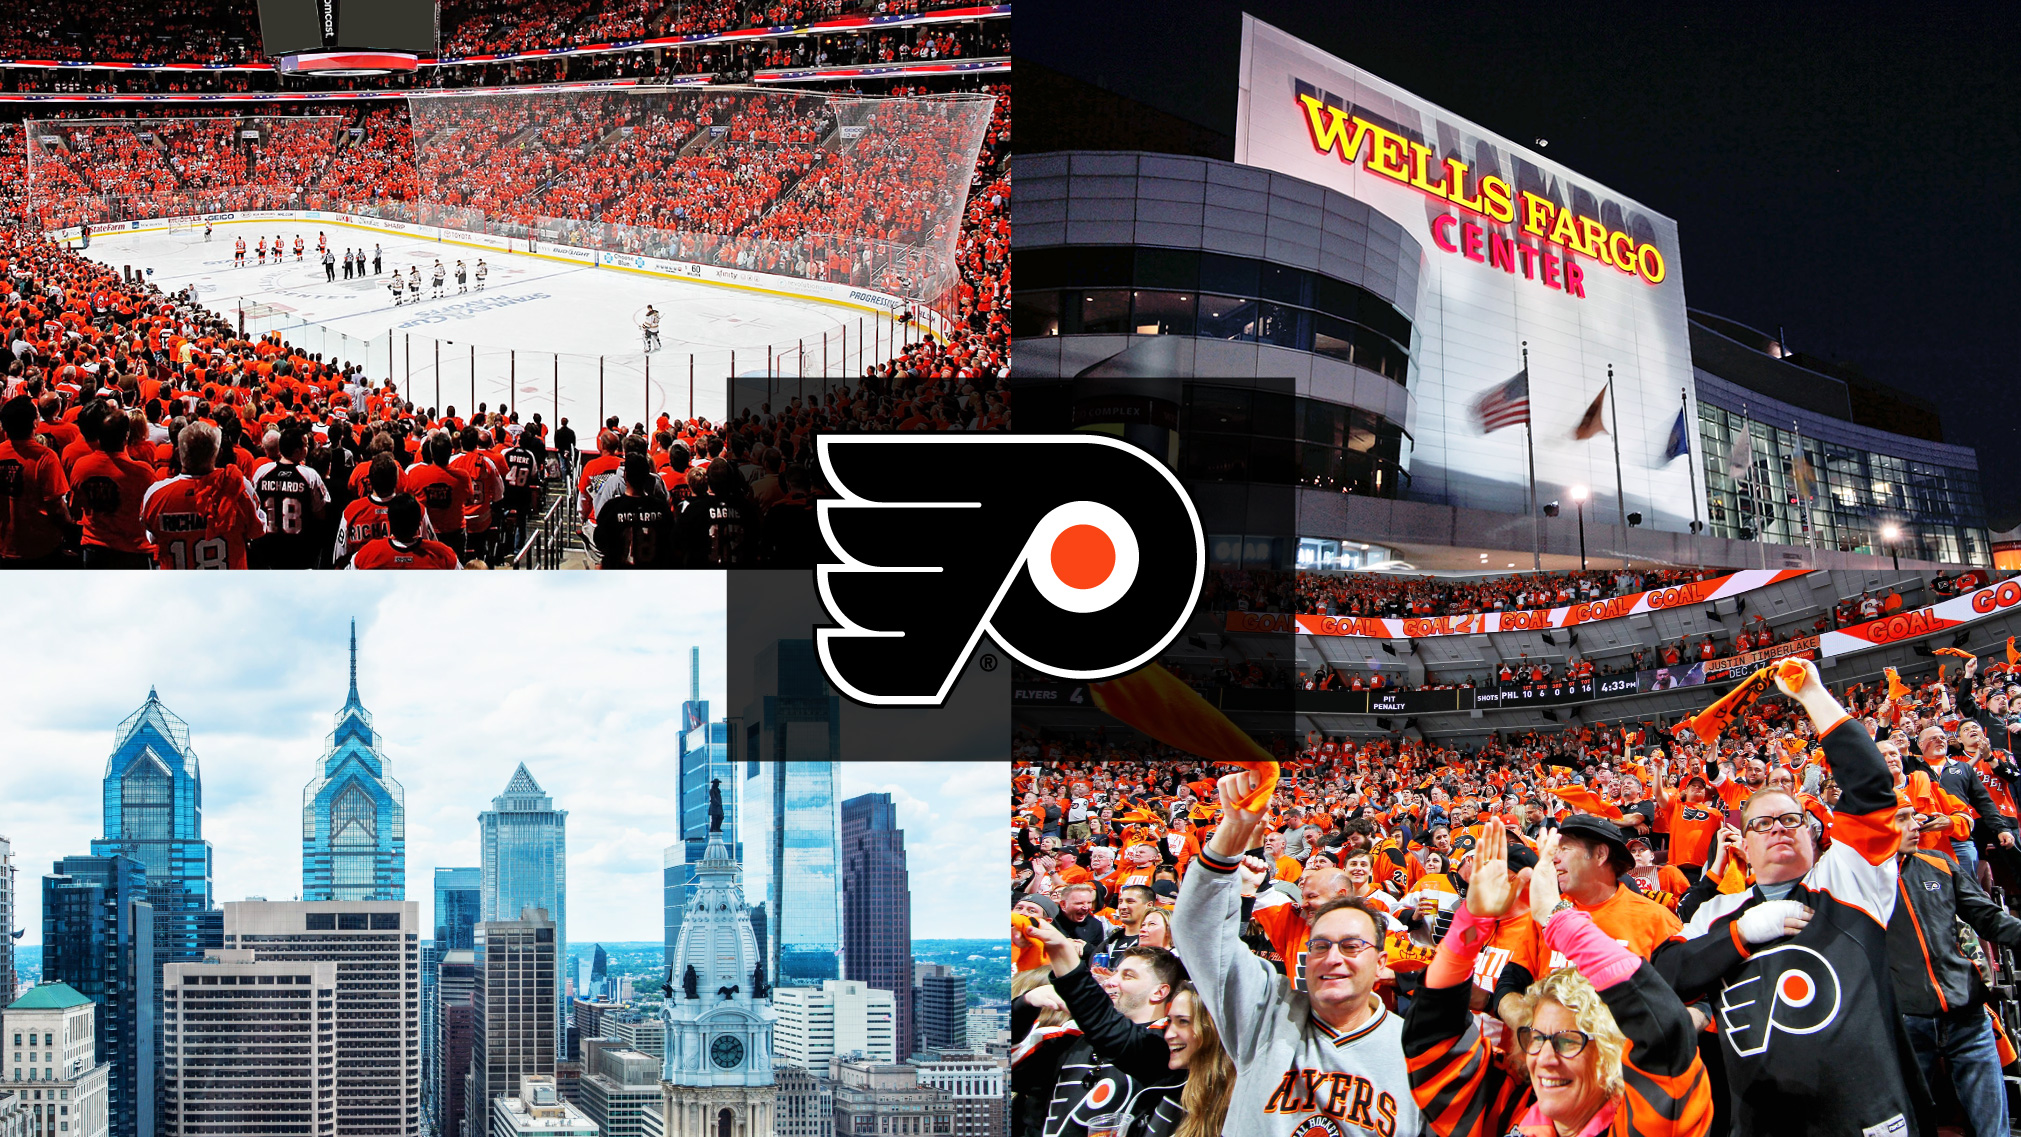 Philadelphia-Flyers-Wells Fargo Center-Turnkey Search.jpg